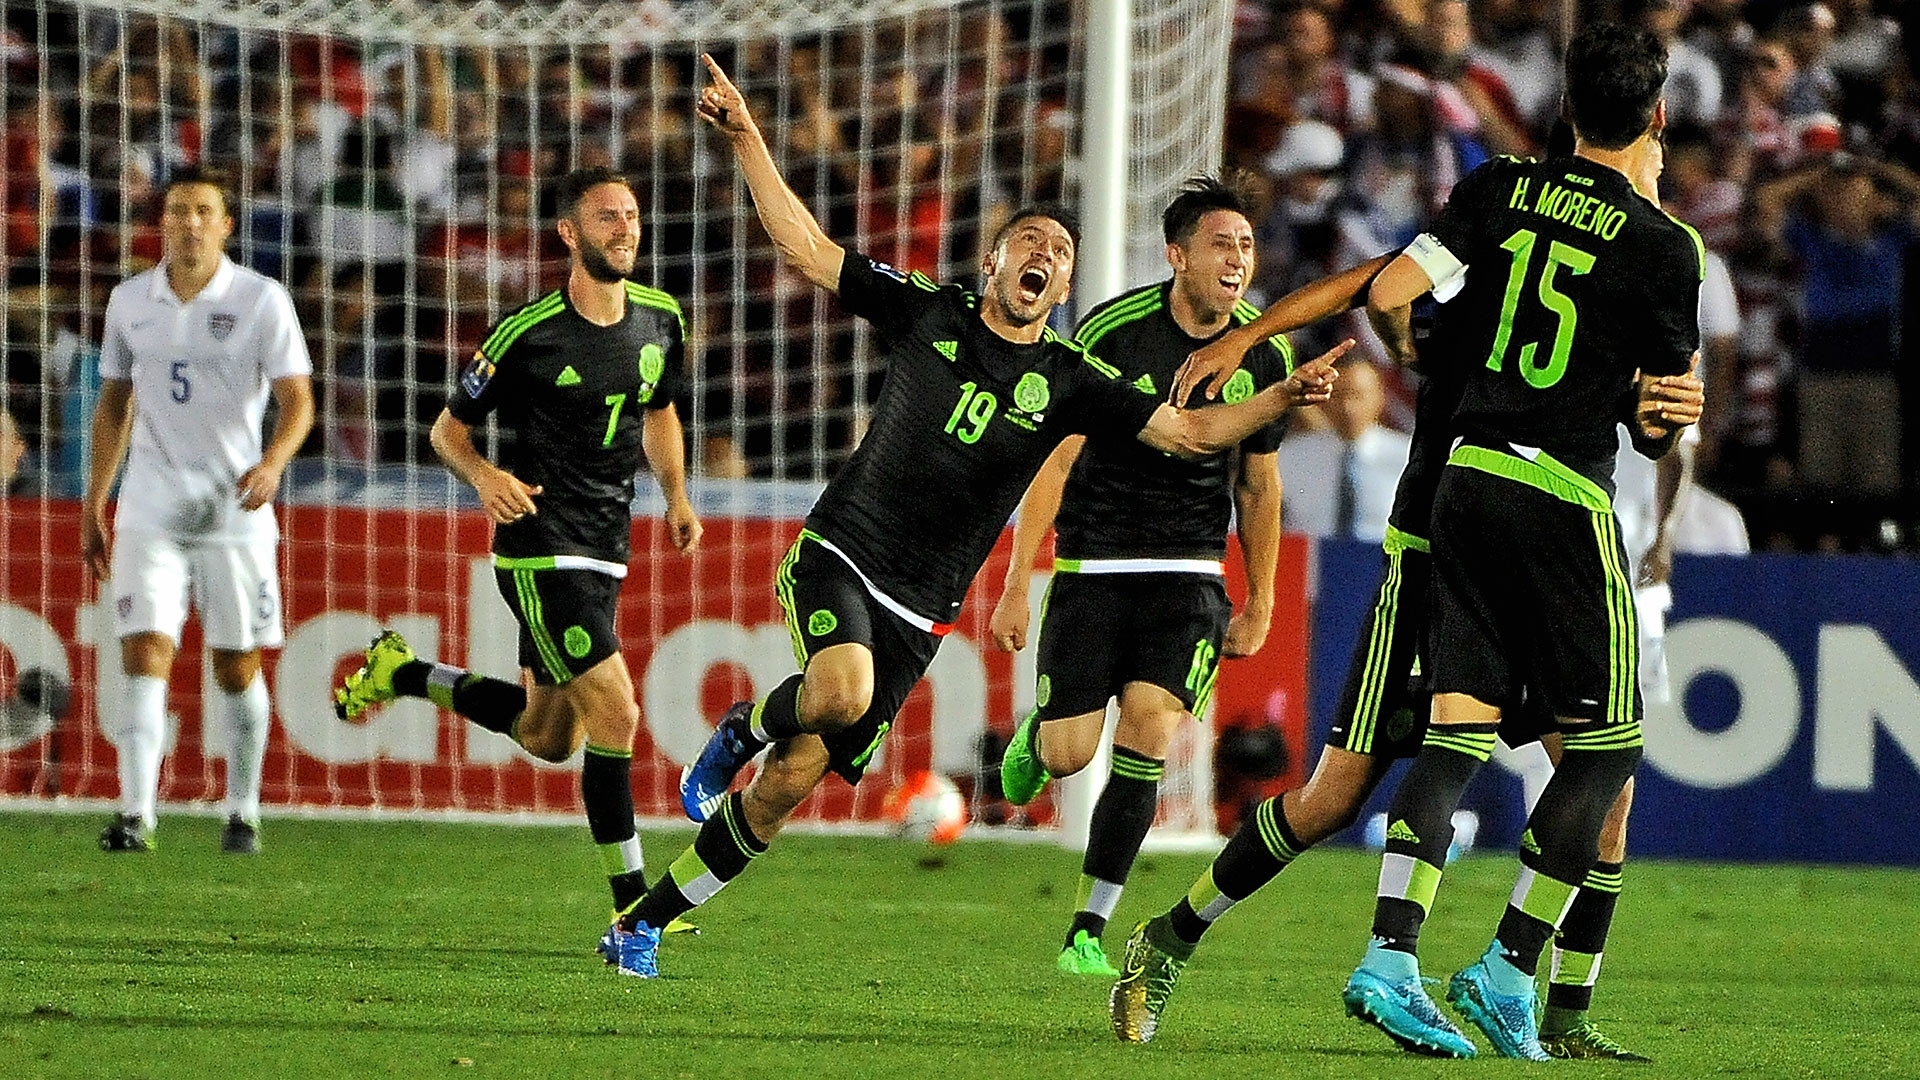 Mexico in Confederations Cup playoff | Sporting News